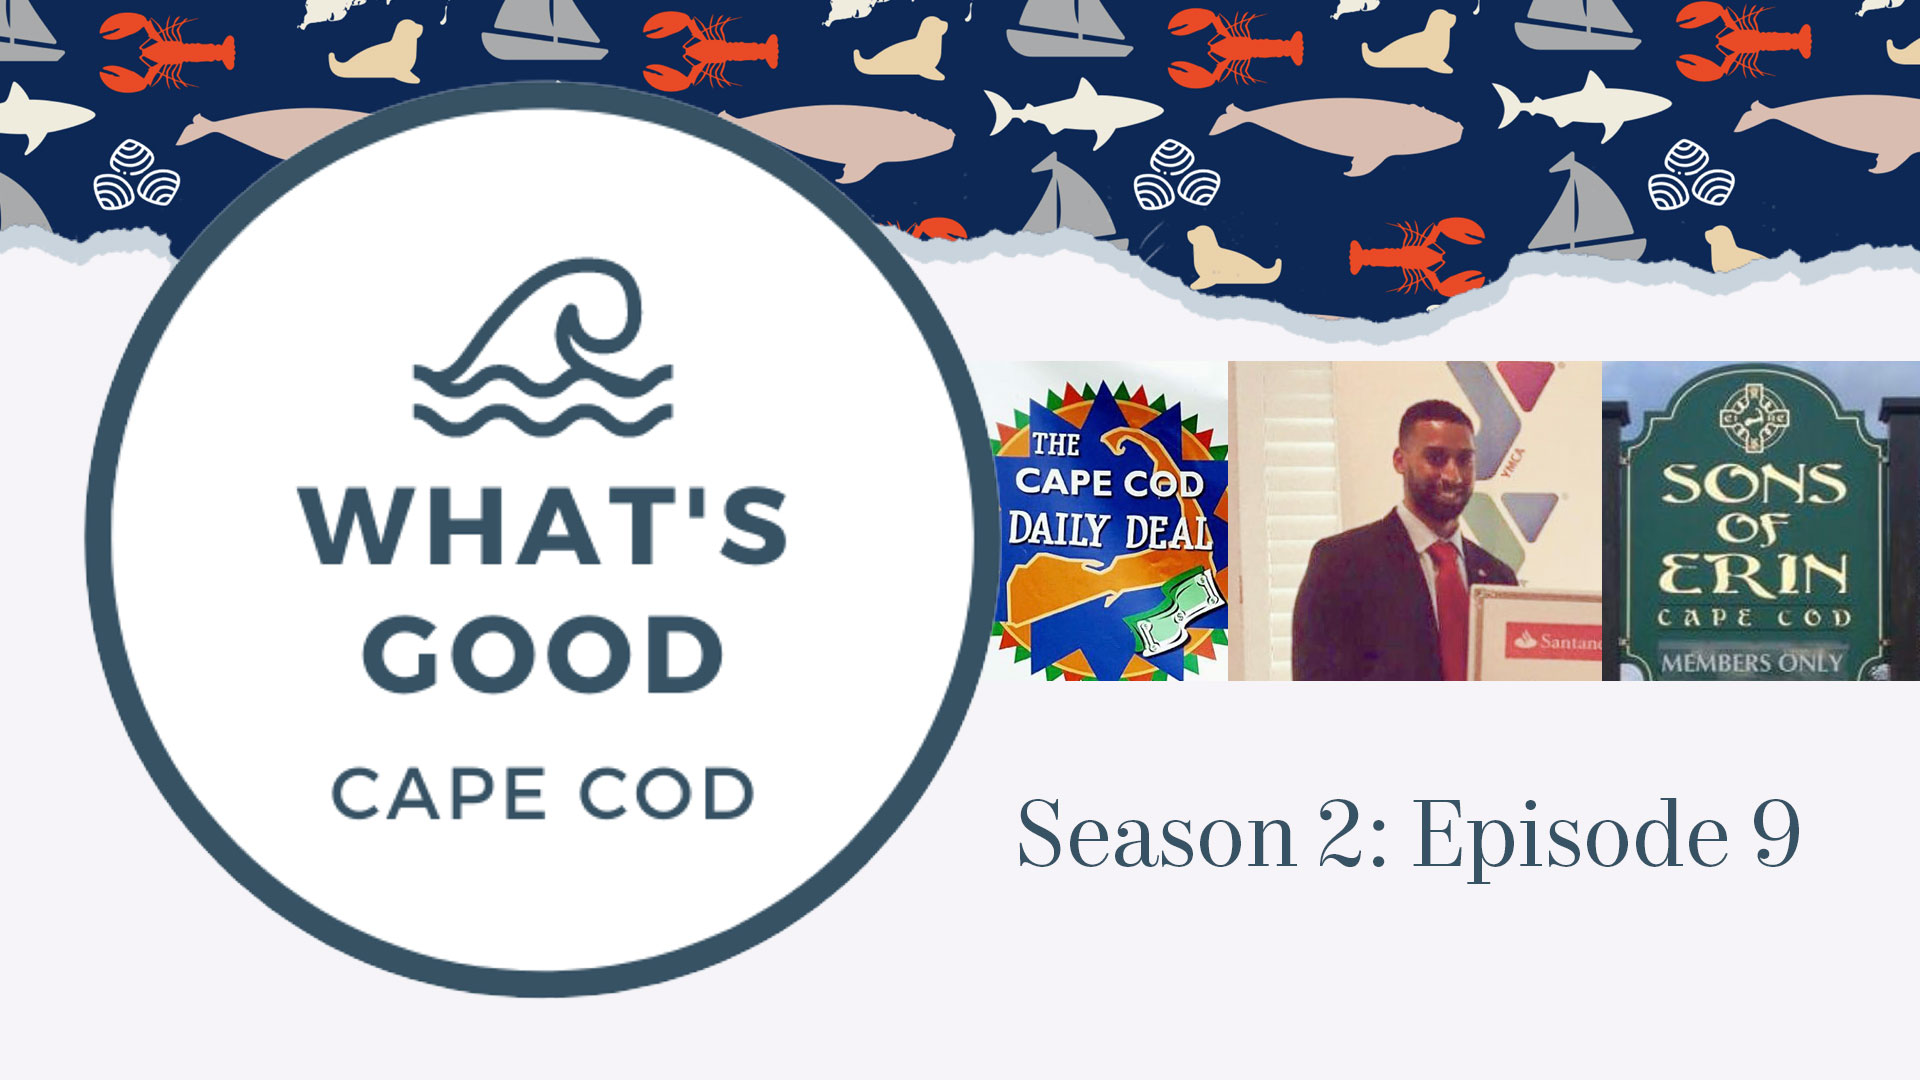 What's Good Cape Cod Season 2 Episode 9 featuring